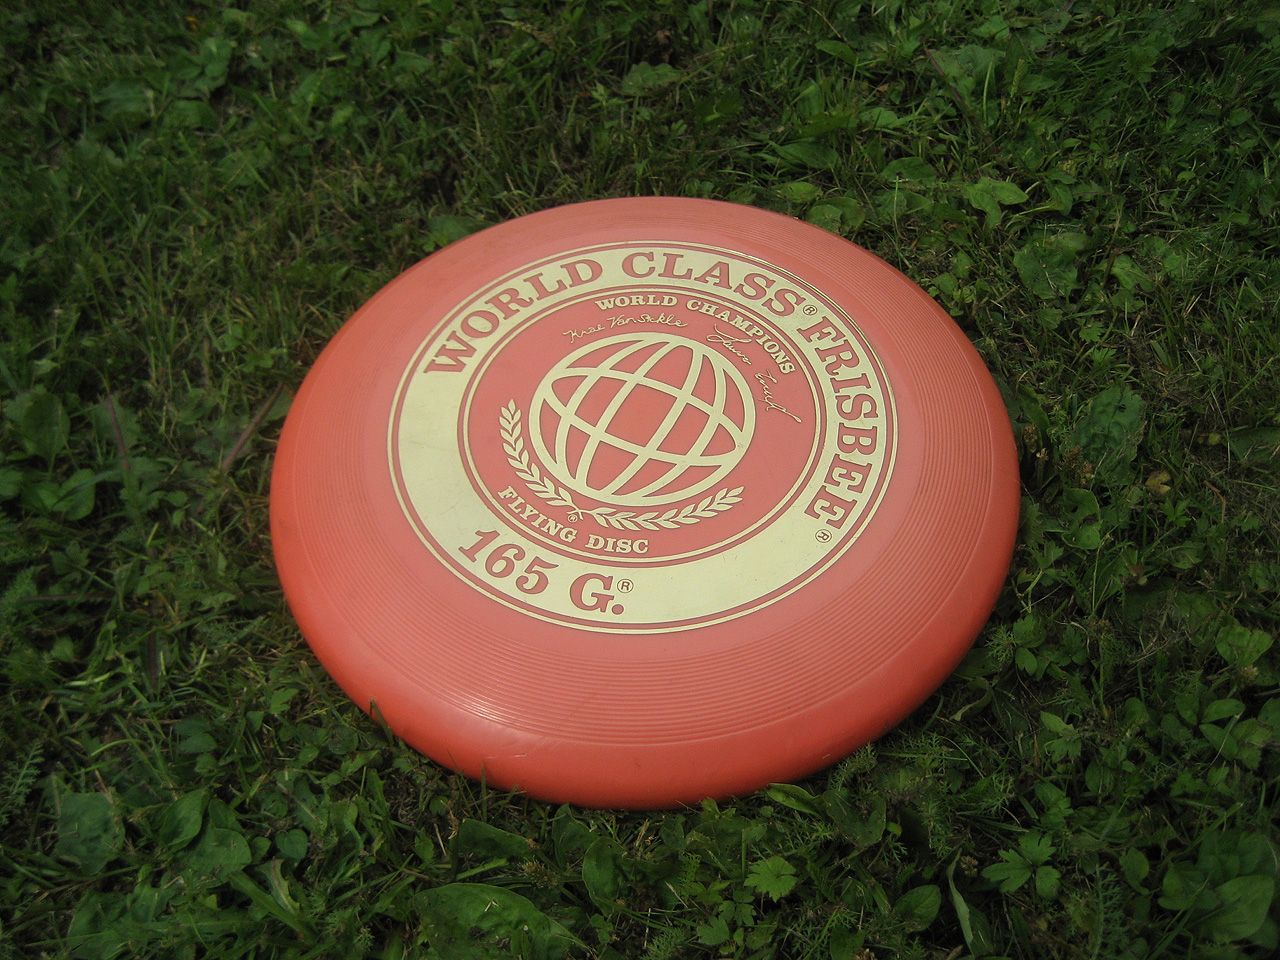 The Frisbee was originally called the